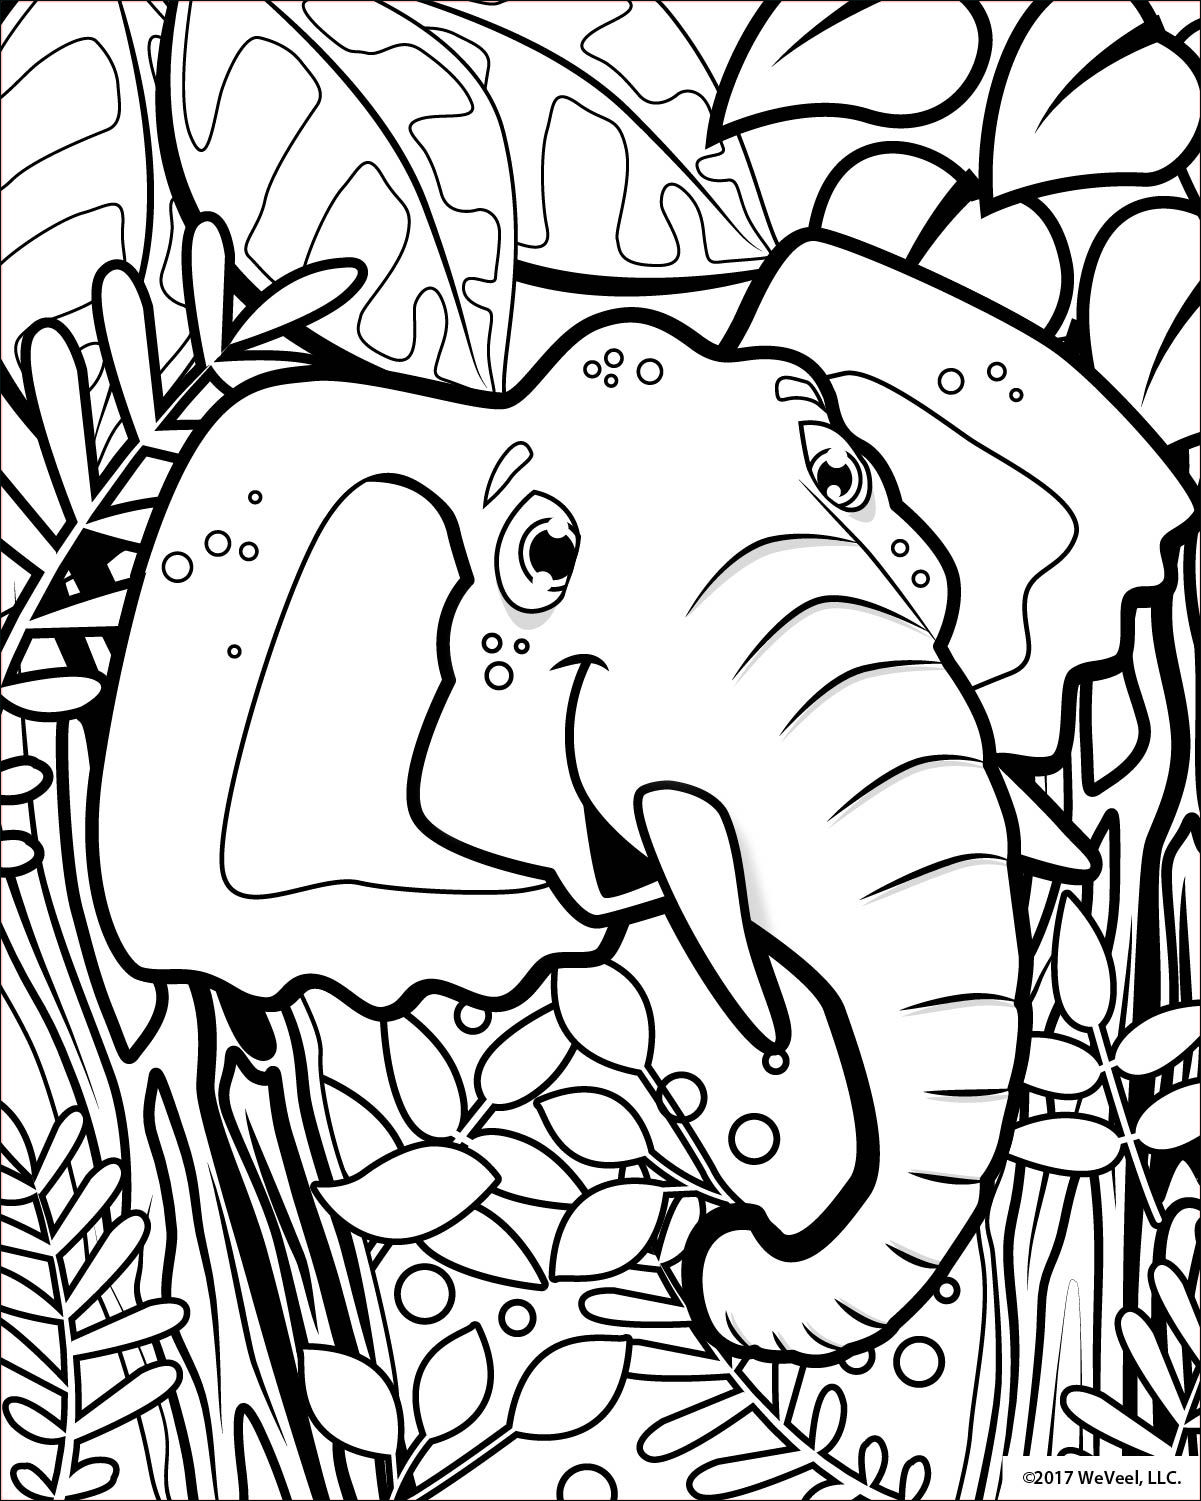 Coloring Pages Jungle Jungle Coloring Pages Coloring Pages Cute Coloring Pages